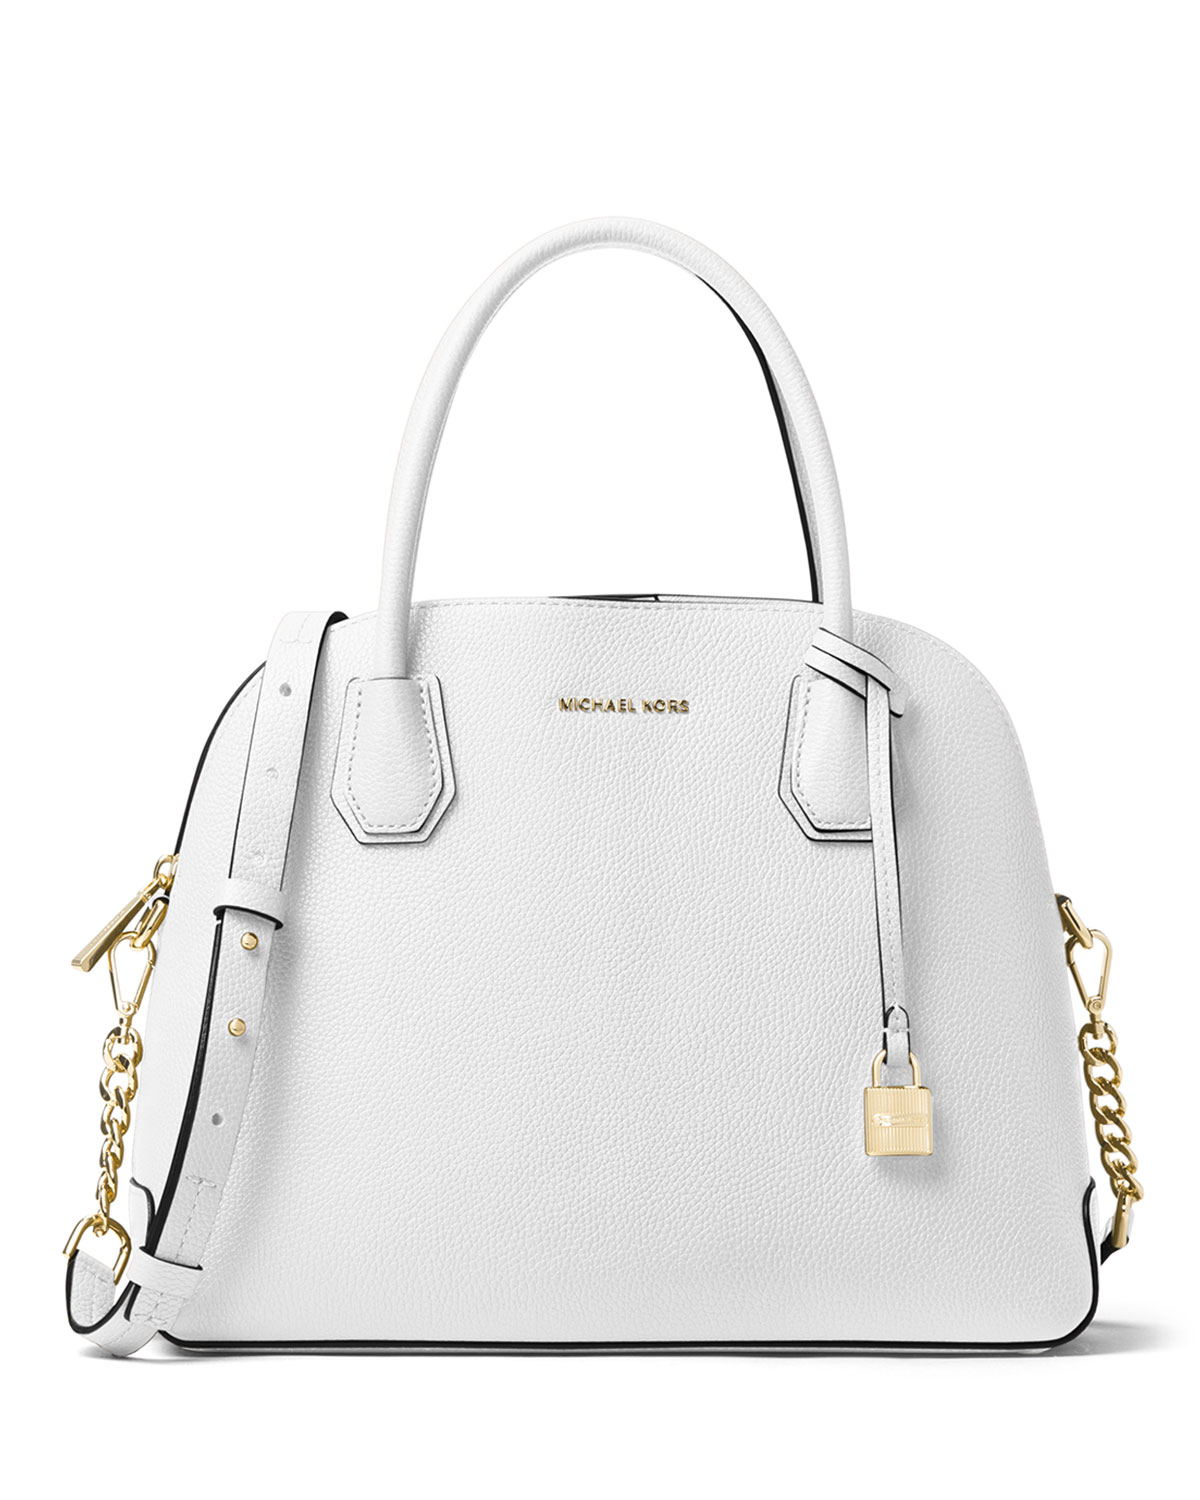 987ae853853c MICHAEL Michael Kors Mercer Large Dome Satchel Bag